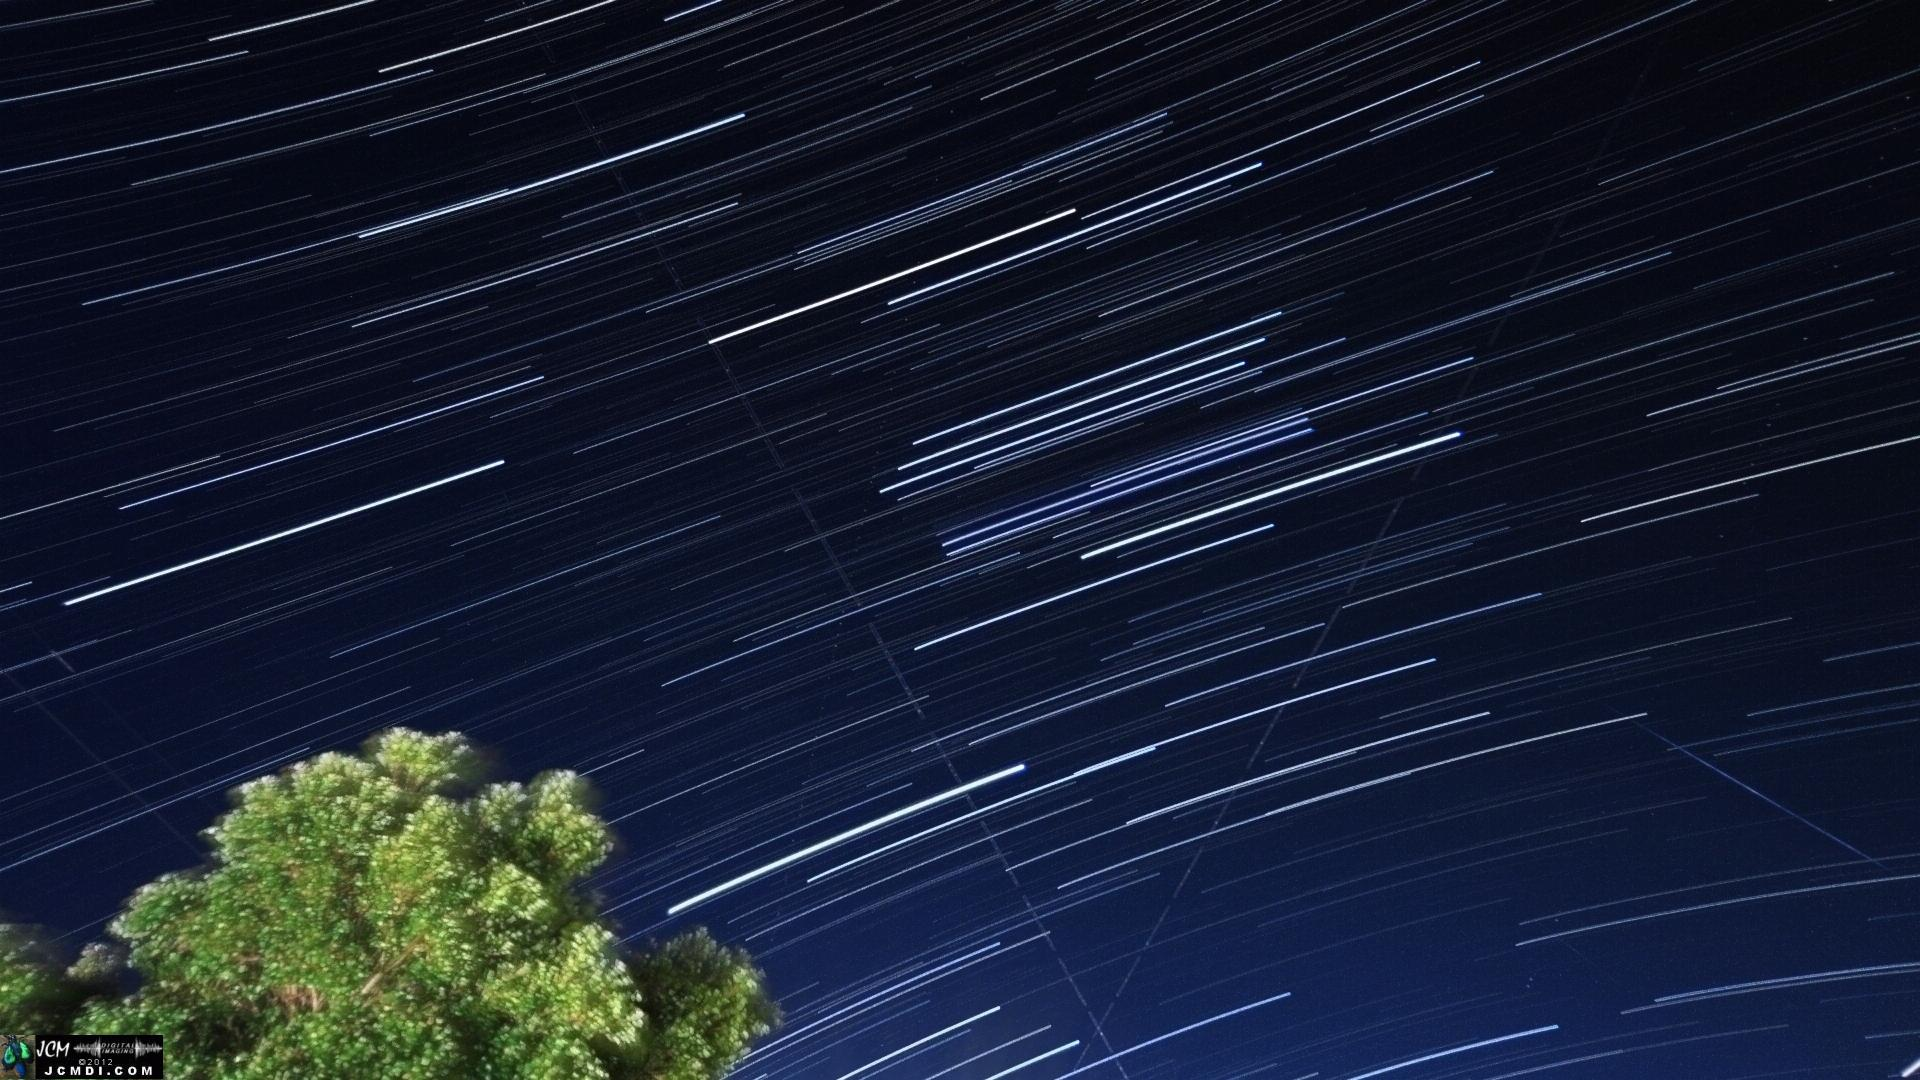 Geminid meteor streaks, 12-13-2012, composite of 750 images taken from 9p to 11p